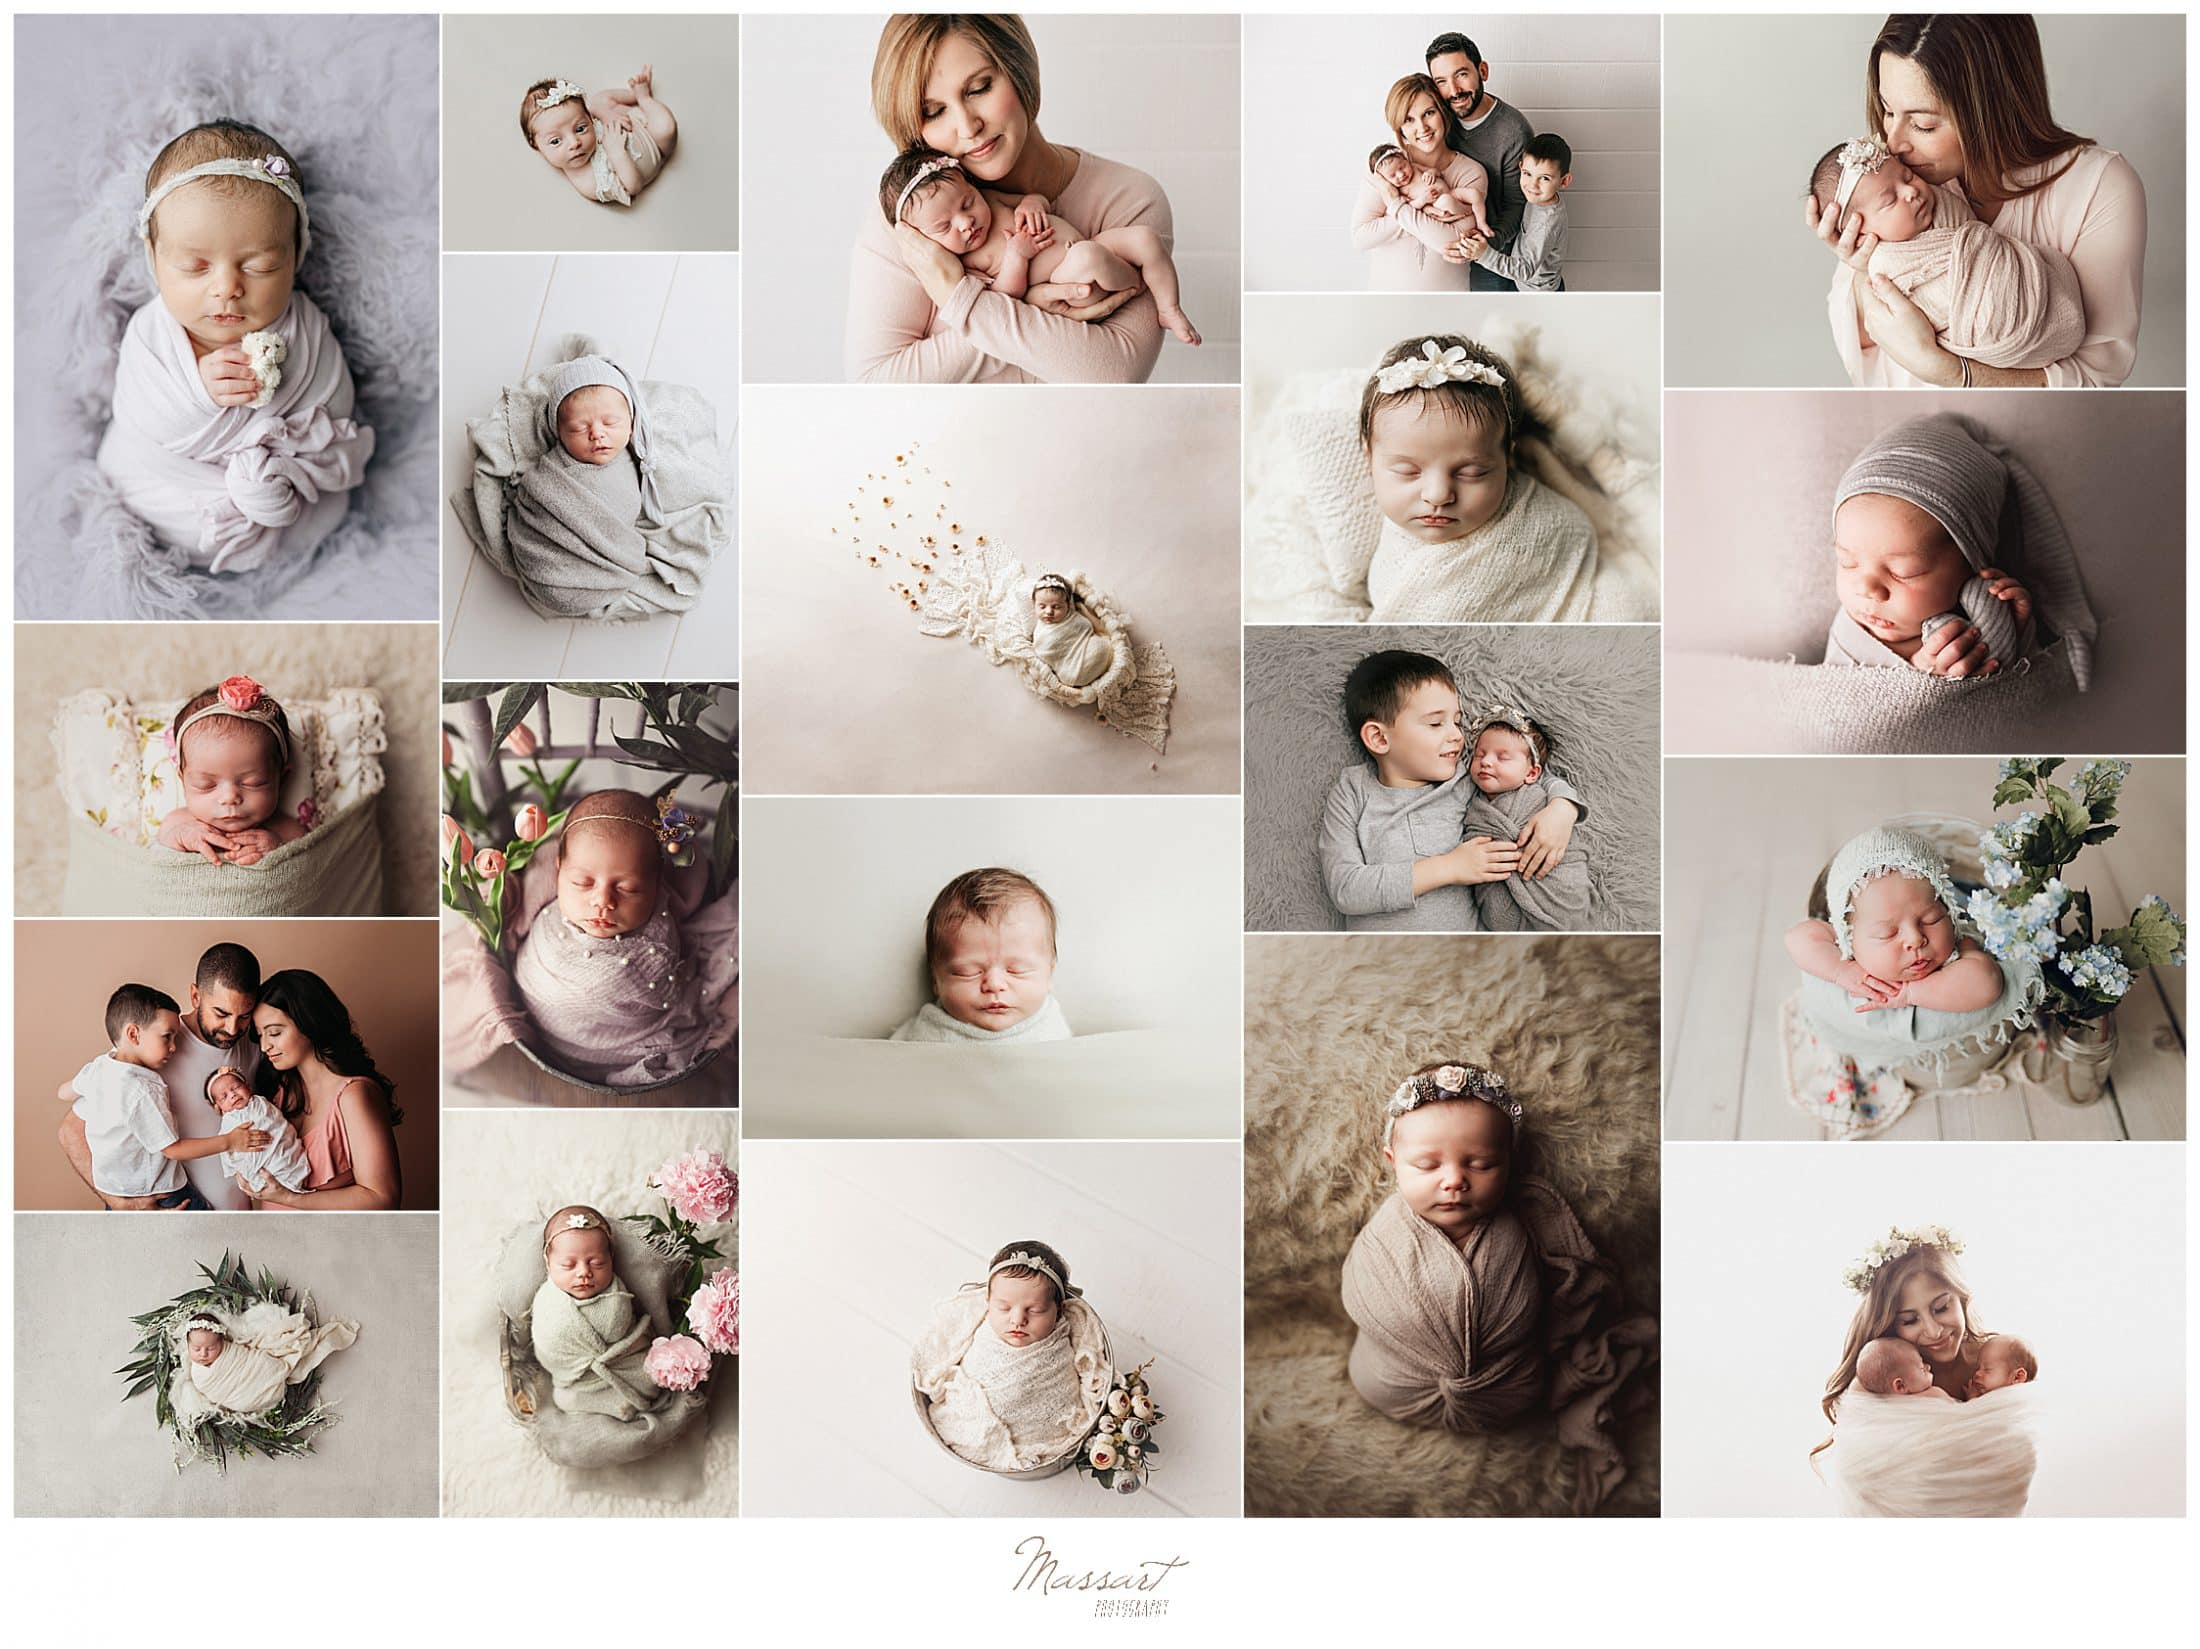 Creative images of babies during newborn shoots taken by Massart Photography whose photographers service RI, CT and MA